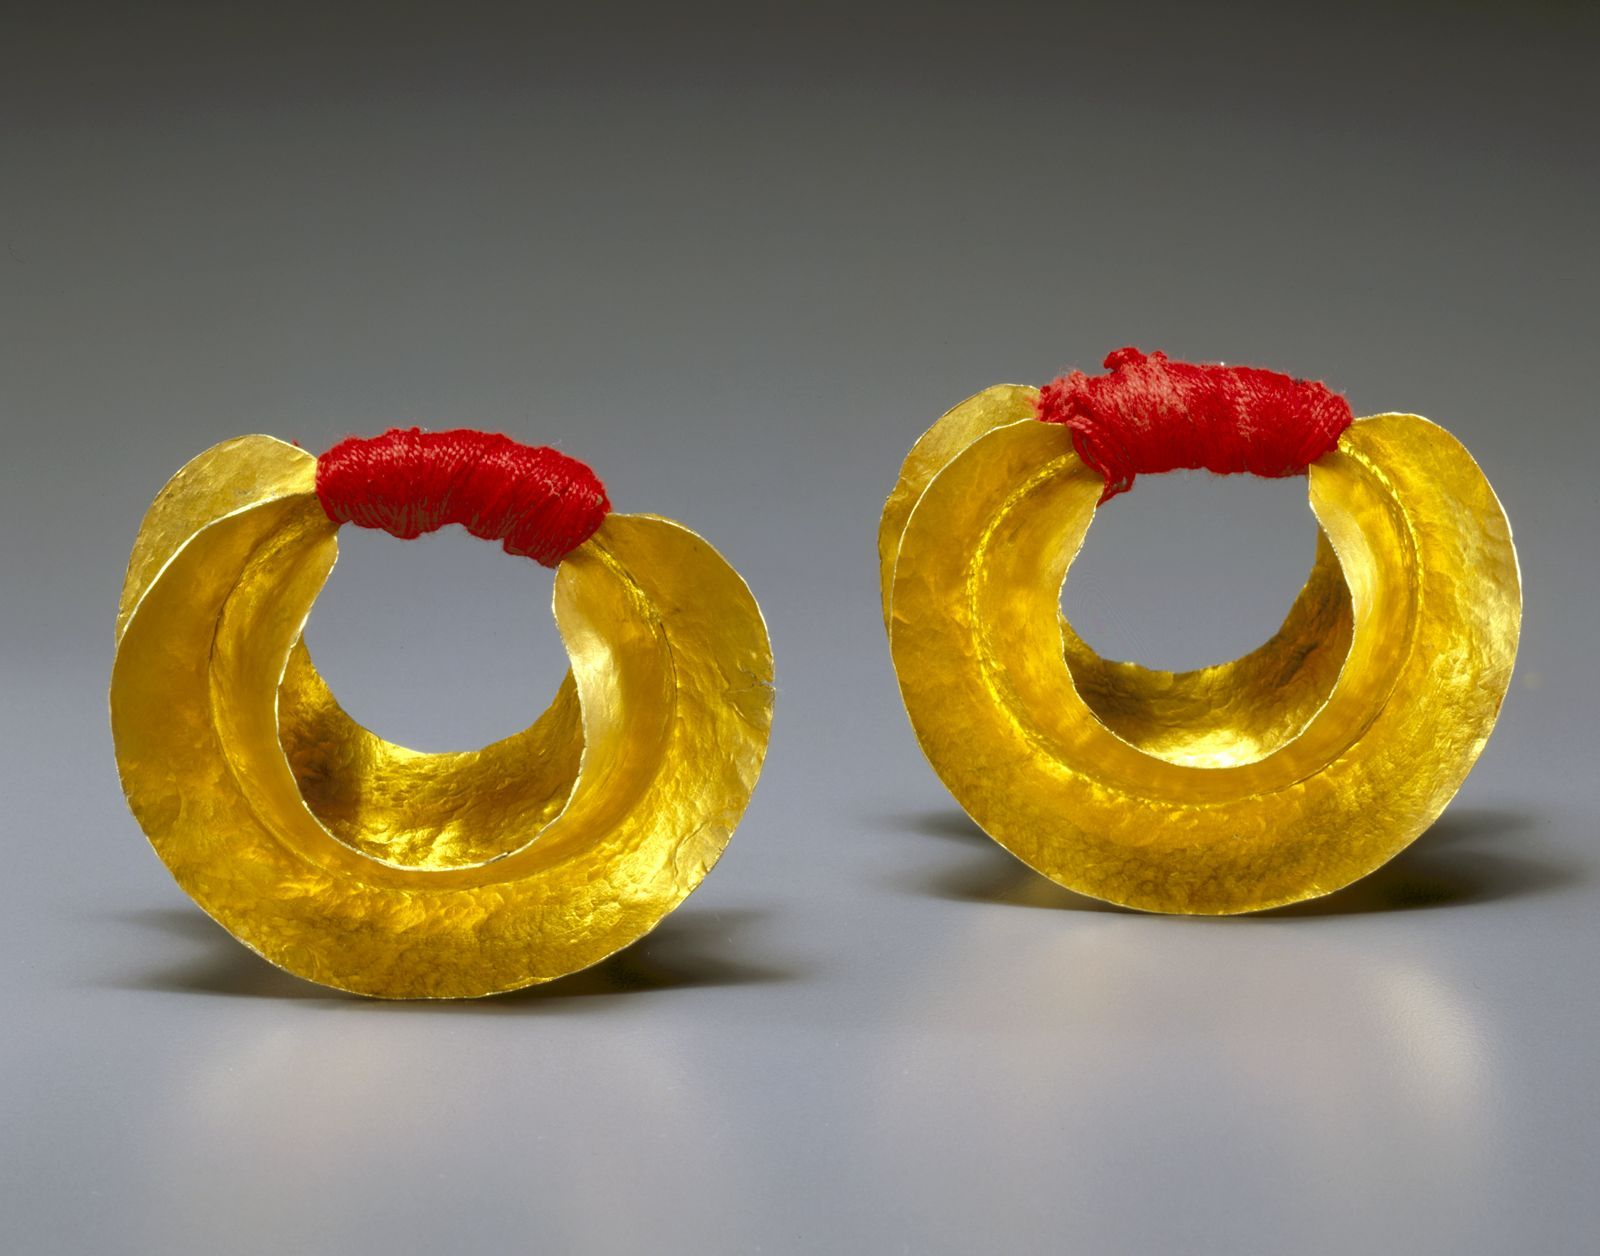 Africa | Fulani earrings.  Gold and fiber.  Mid 20th century | Jewelry items such this example form an important part of a woman's personal prestige and wealth.